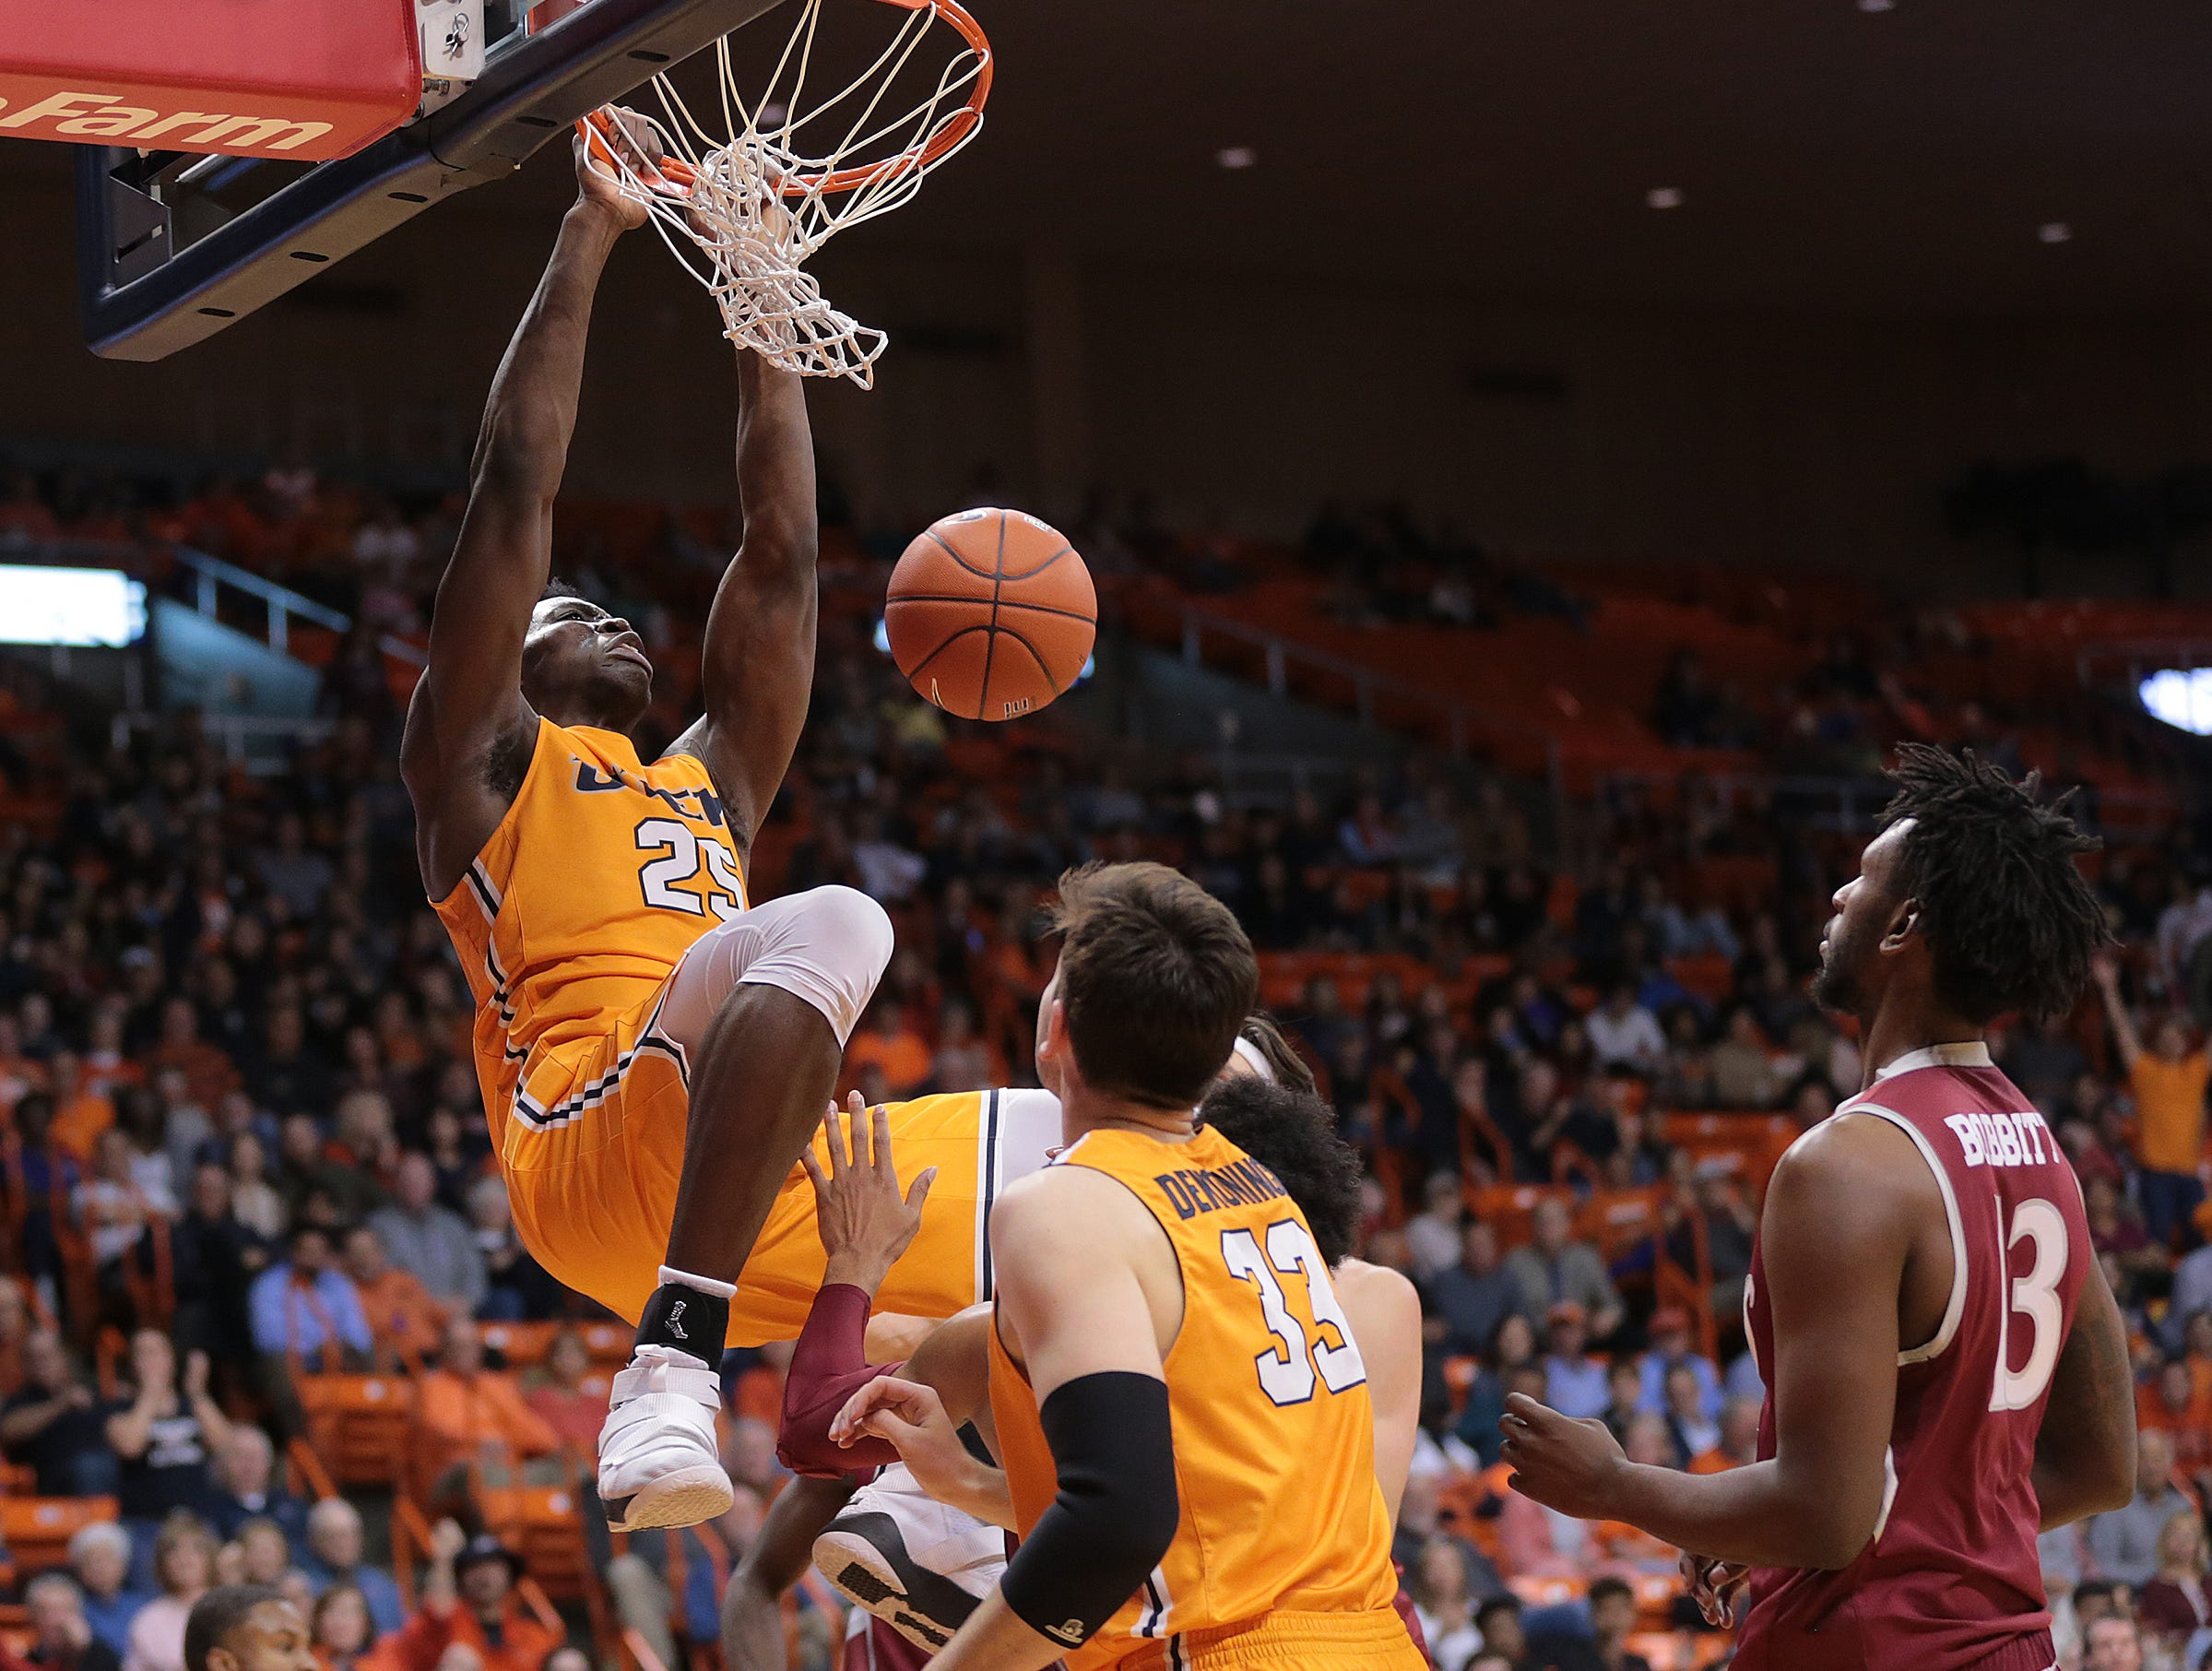 The UTEP Miners came close but lost to NMSU on Wednesday night at the Don Haskins Center. The final score was 62-58.